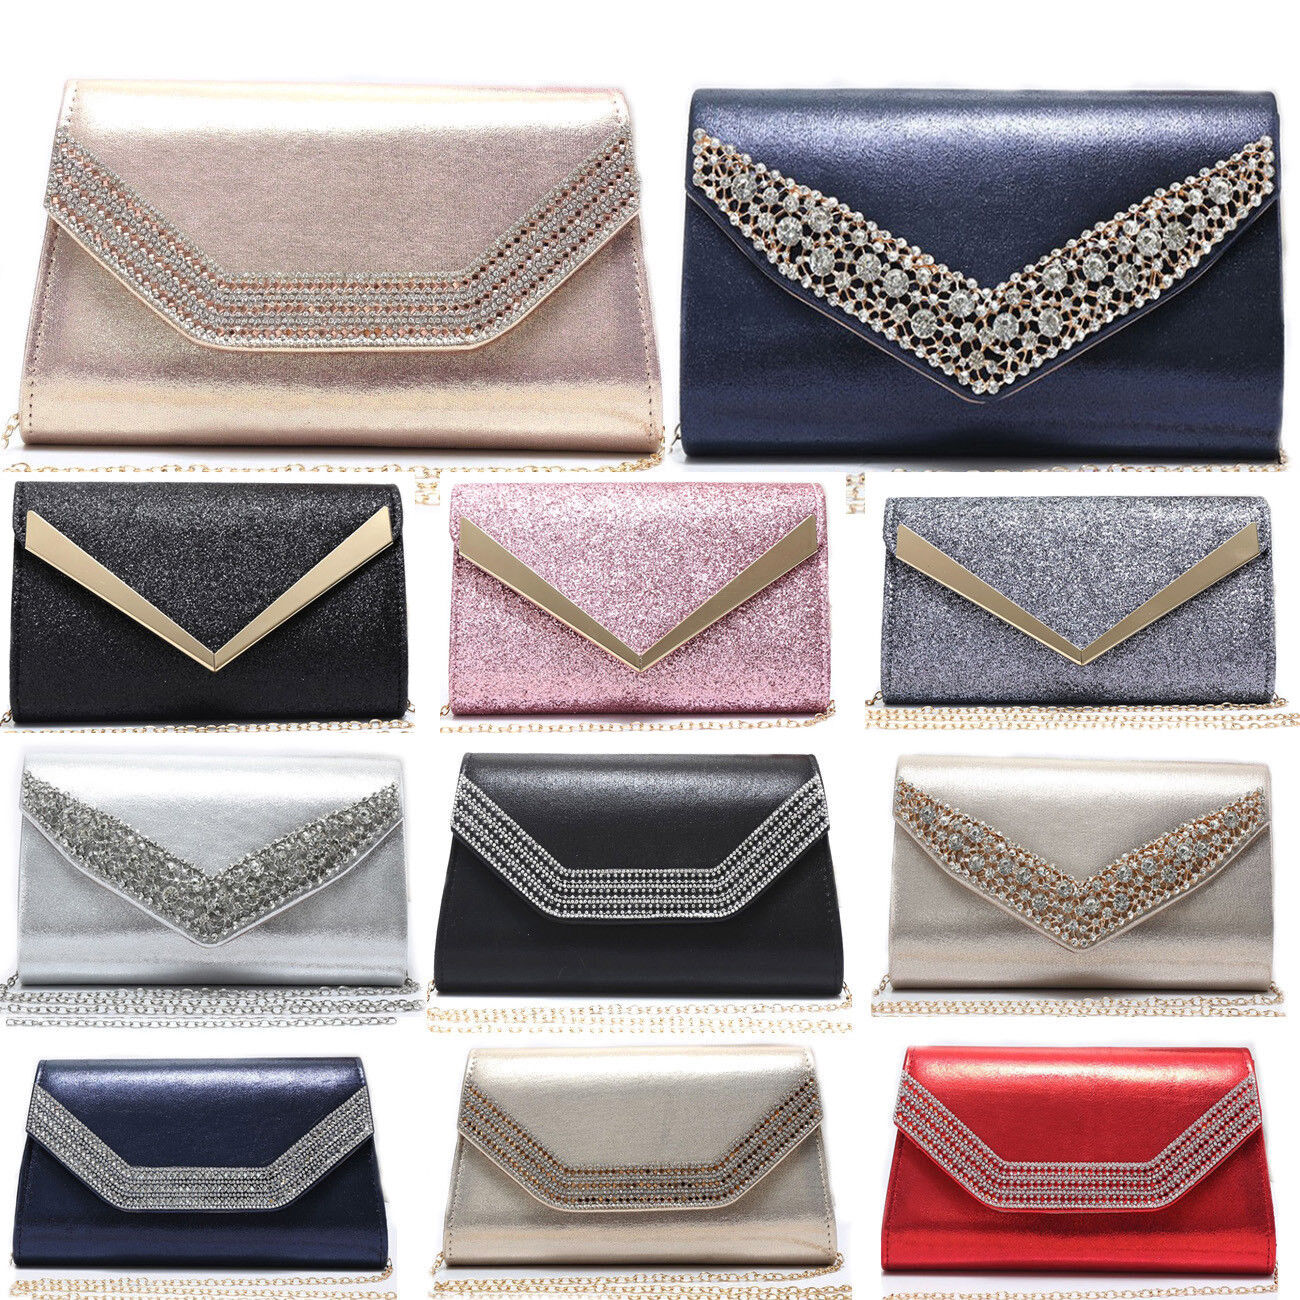 LeahWard Women's New Evening Diamante Party Clutch Bag For W